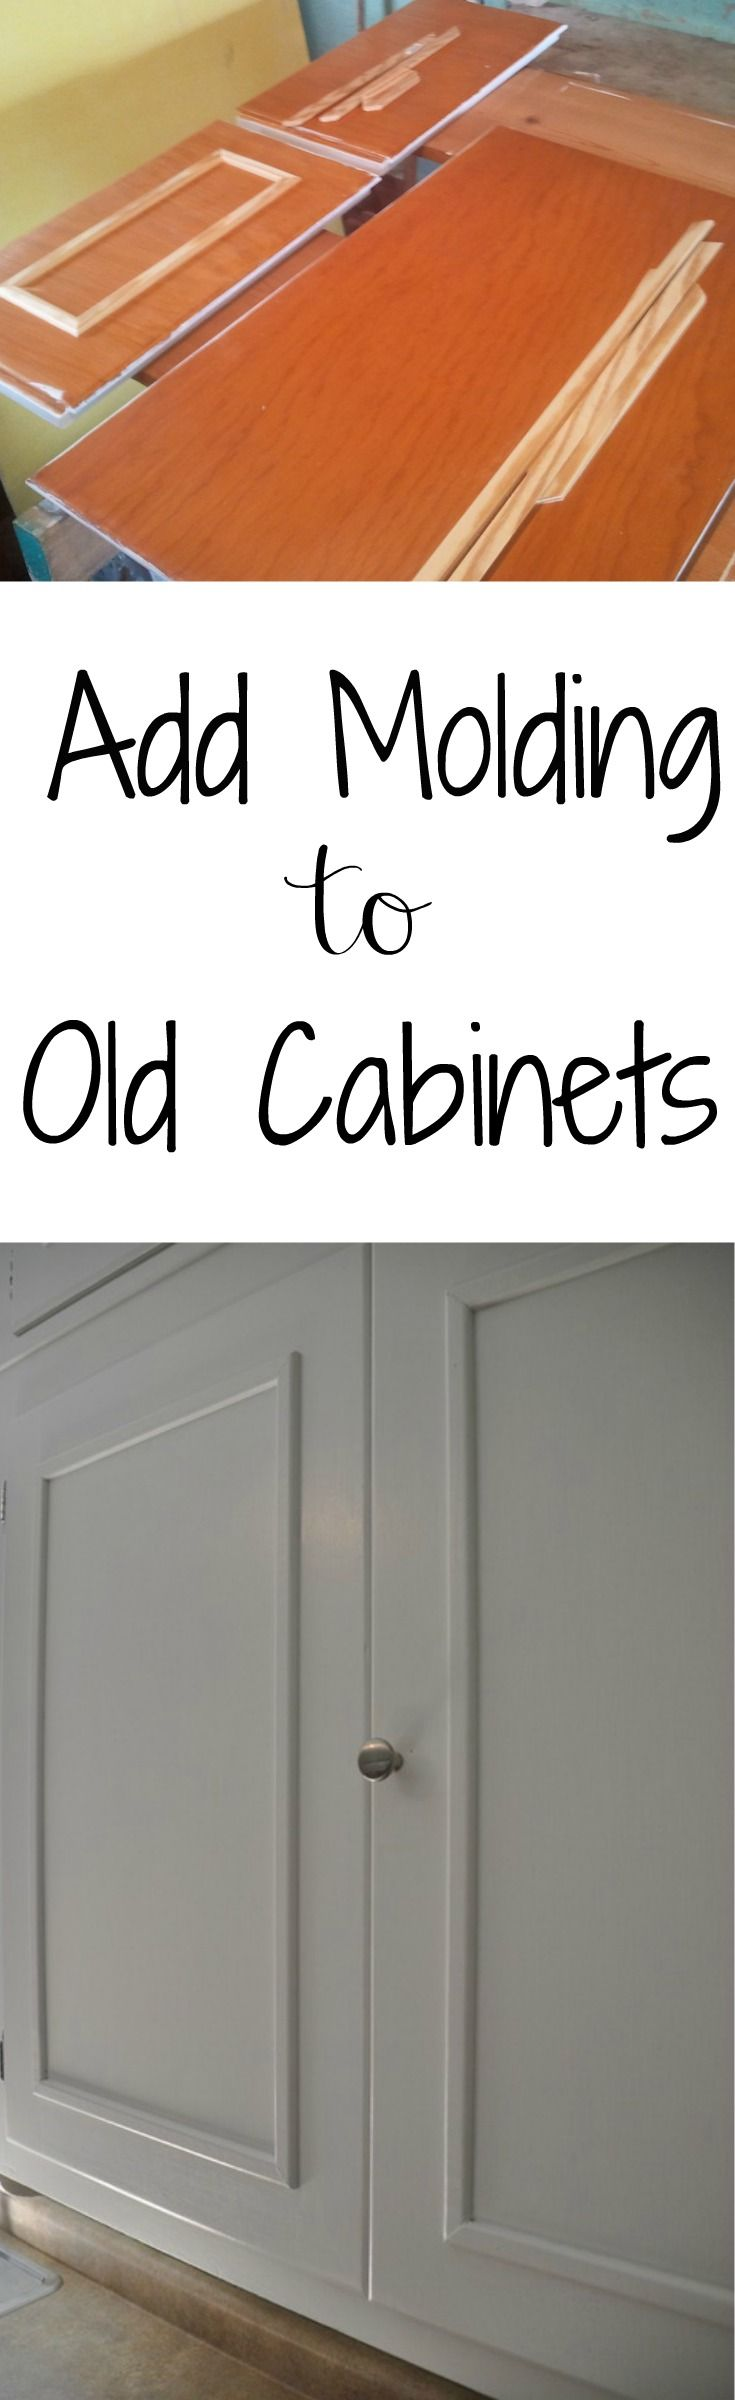 Remodeling Old Kitchen 17 Best Ideas About Old Kitchen Cabinets On Pinterest Updating